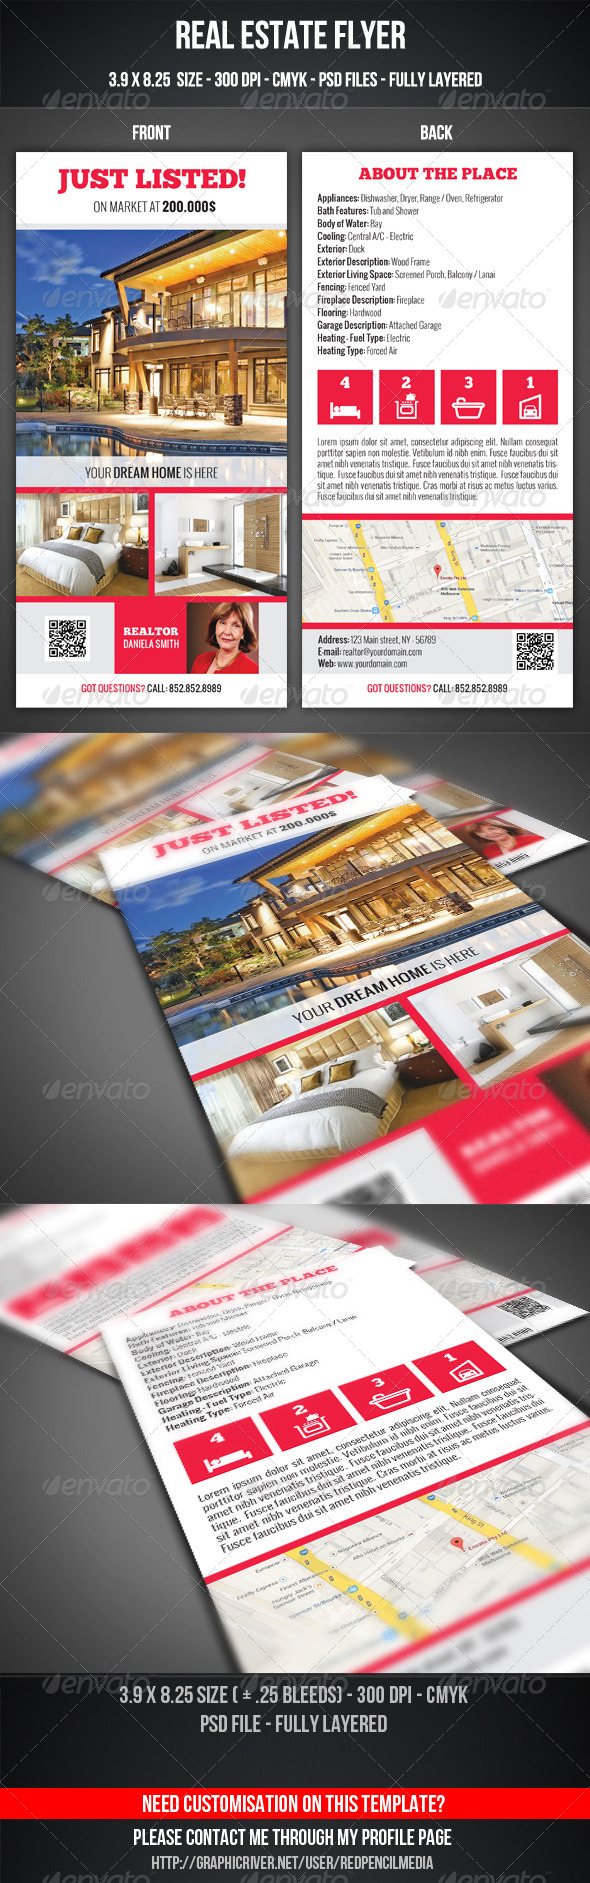 GraphicRiver Real Estate Flyer 7510462